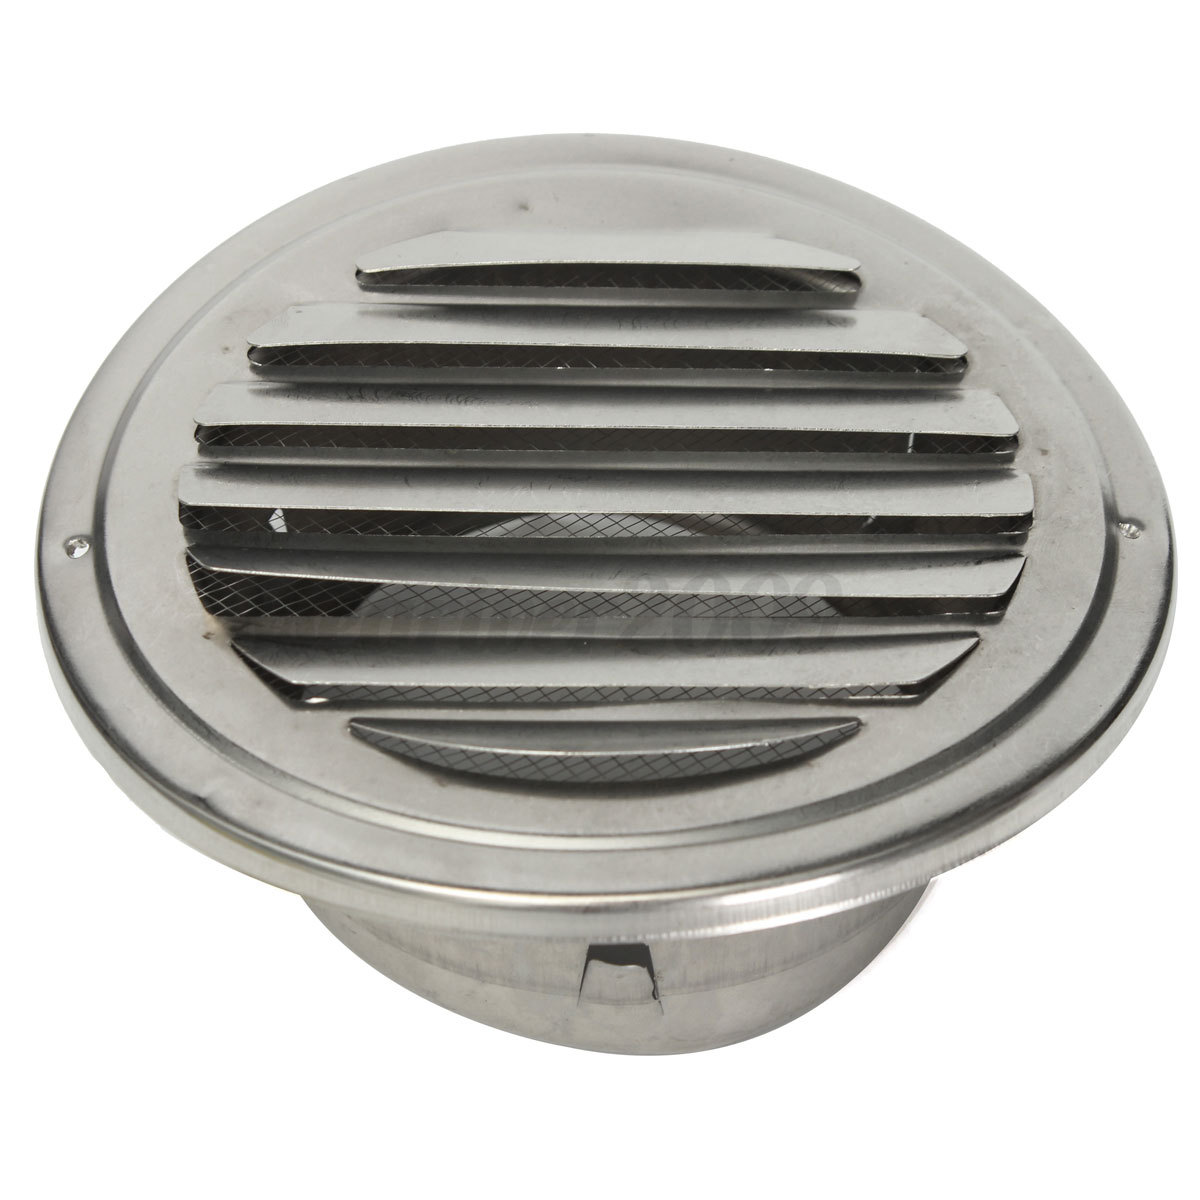 #6C685F Stainless Steel Silver Circular Air Vent Grille Cover Wall  Recommended 7067 Wall Louvers Vents pics with 1200x1200 px on helpvideos.info - Air Conditioners, Air Coolers and more